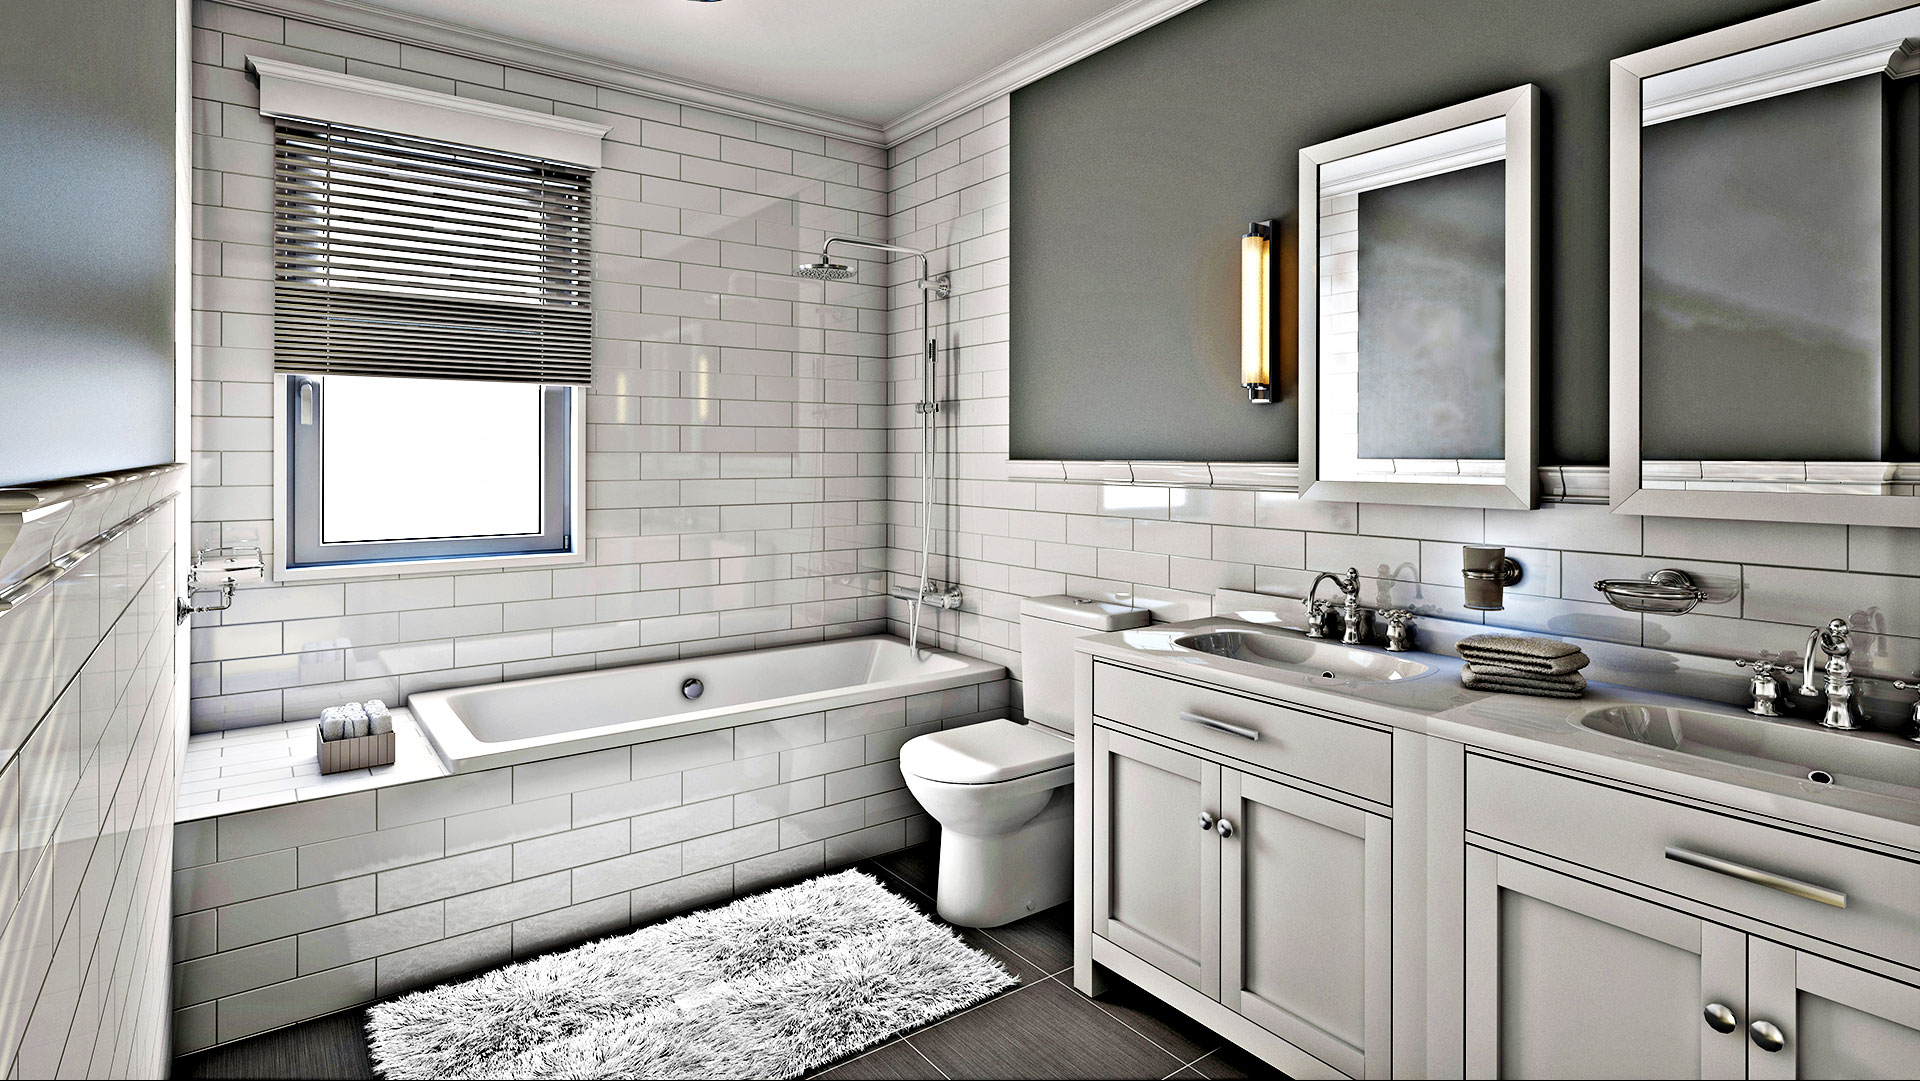 Edward A. Carpentry Corp. Remodeled Bathroom